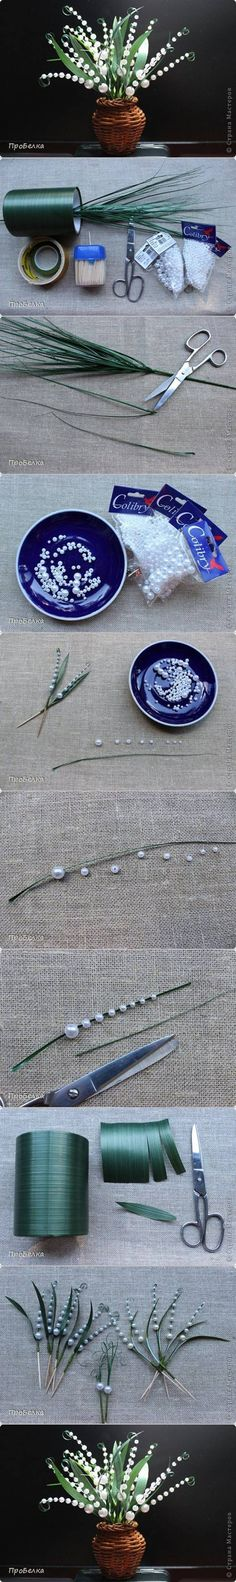 DIY Beautiful Beaded Lily of the Valley #craft #beading #decor